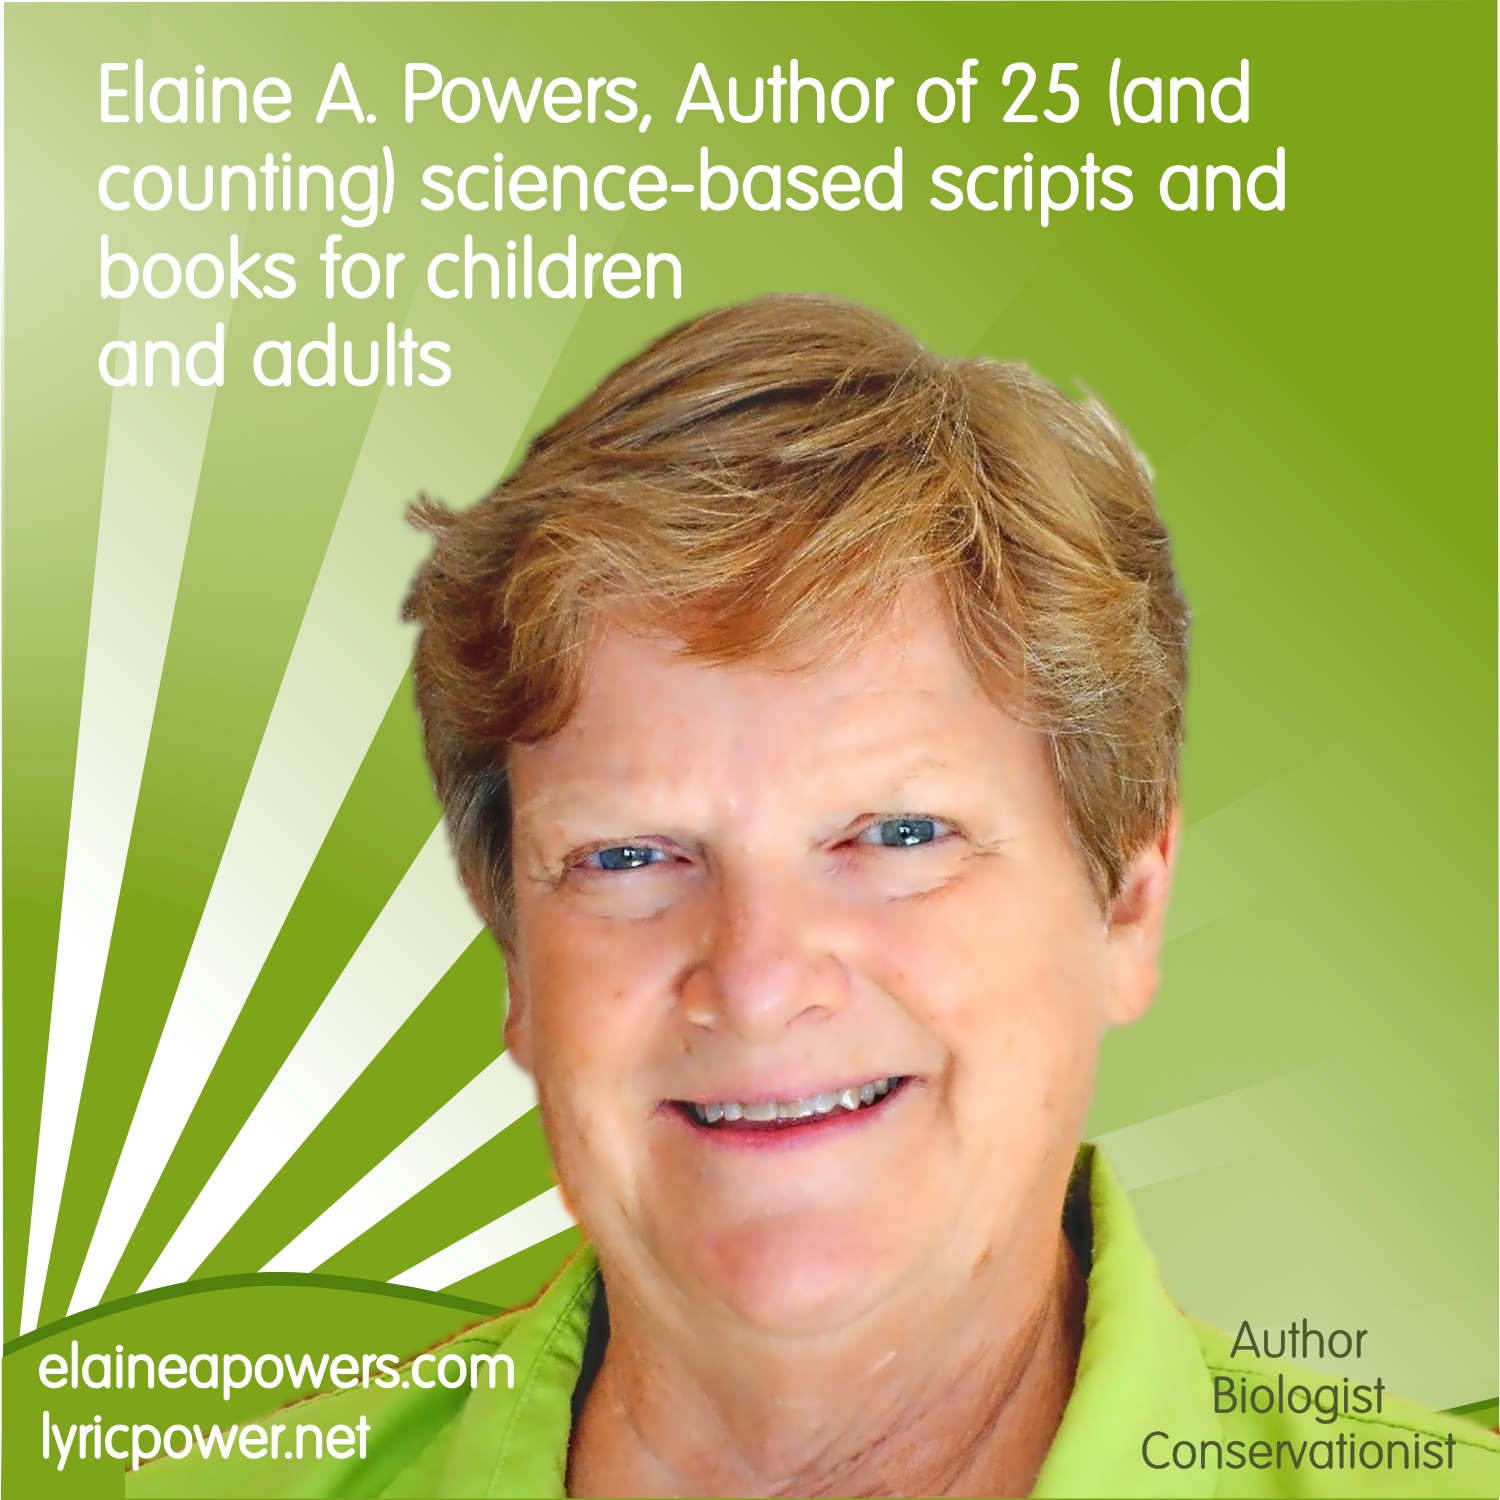 The author Elaine A. Powers head shot against a green background